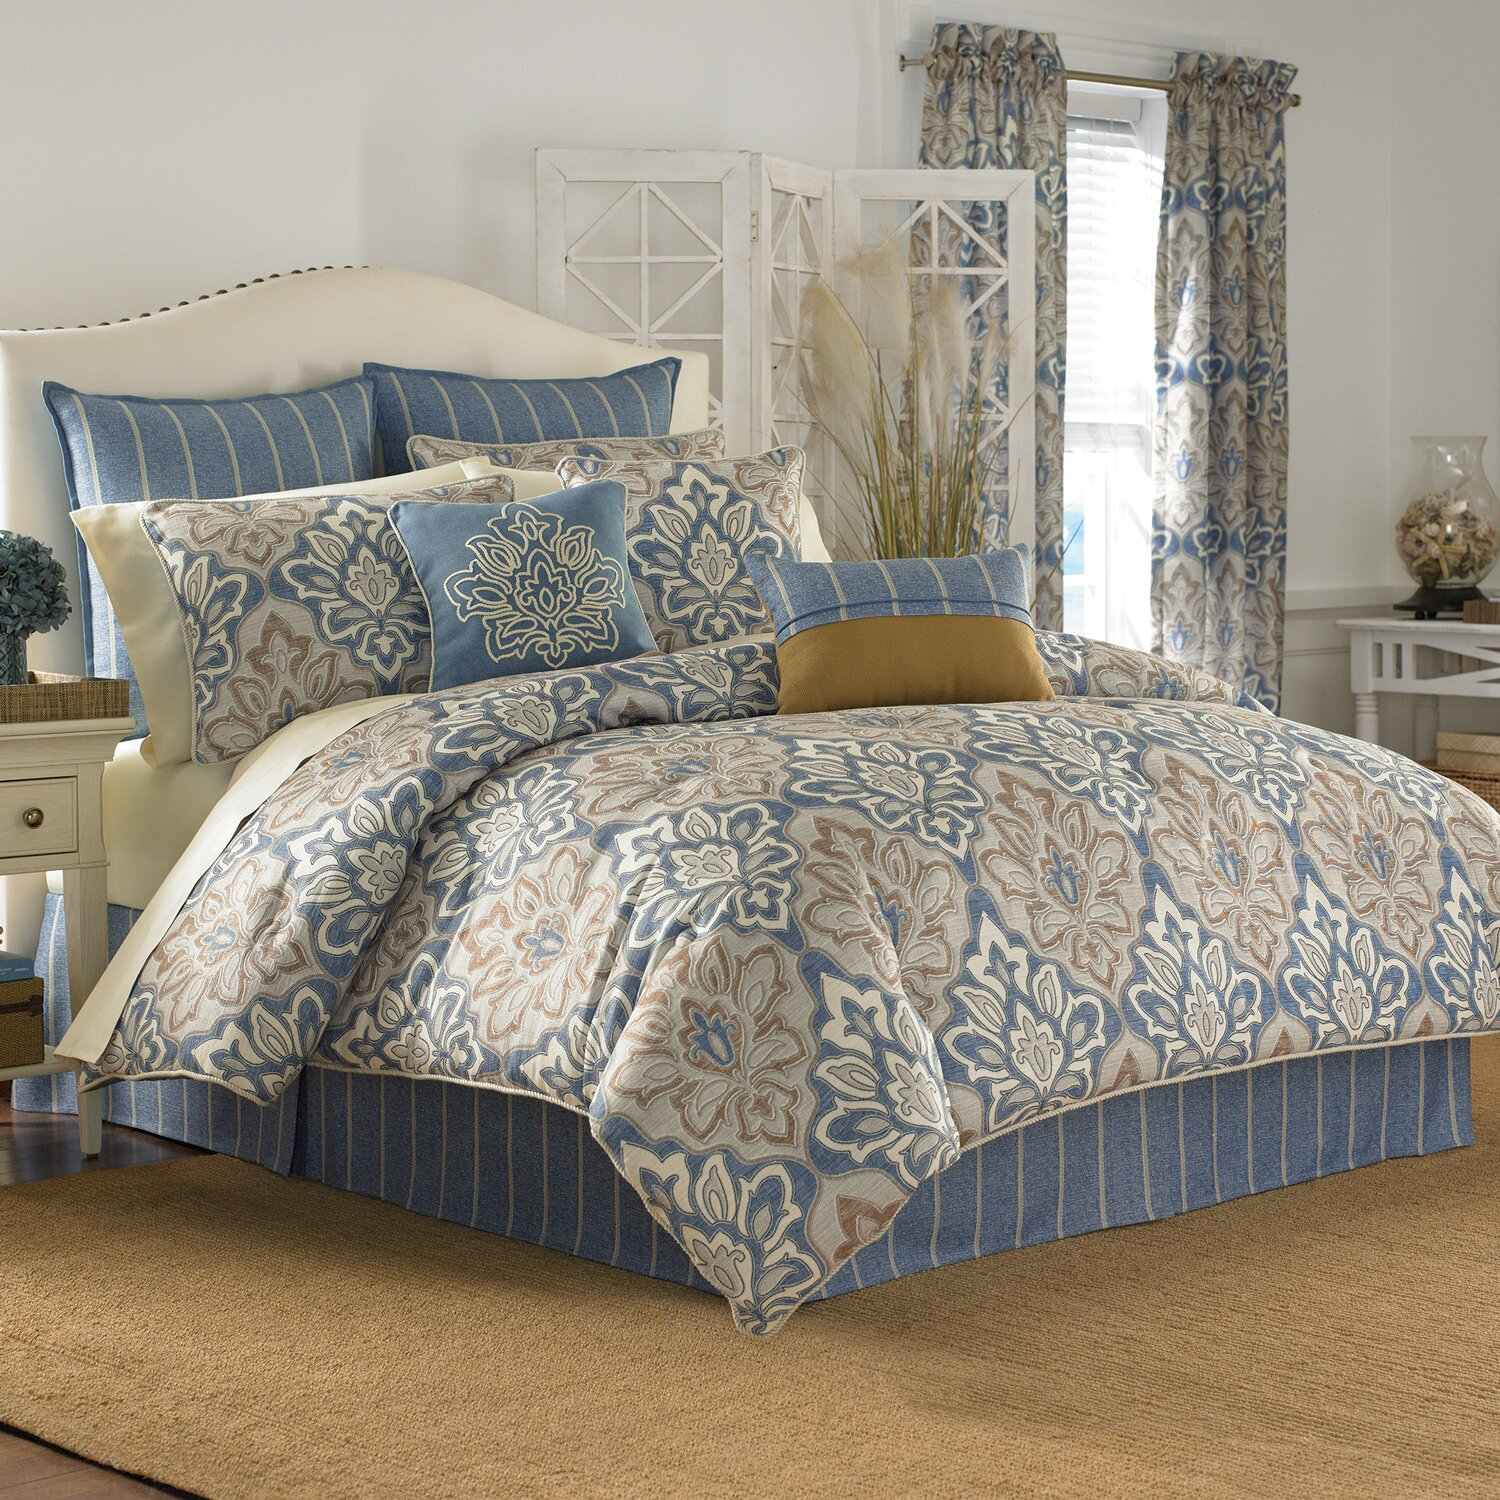 Croscill Captain's Quarters Comforter Collection & Reviews